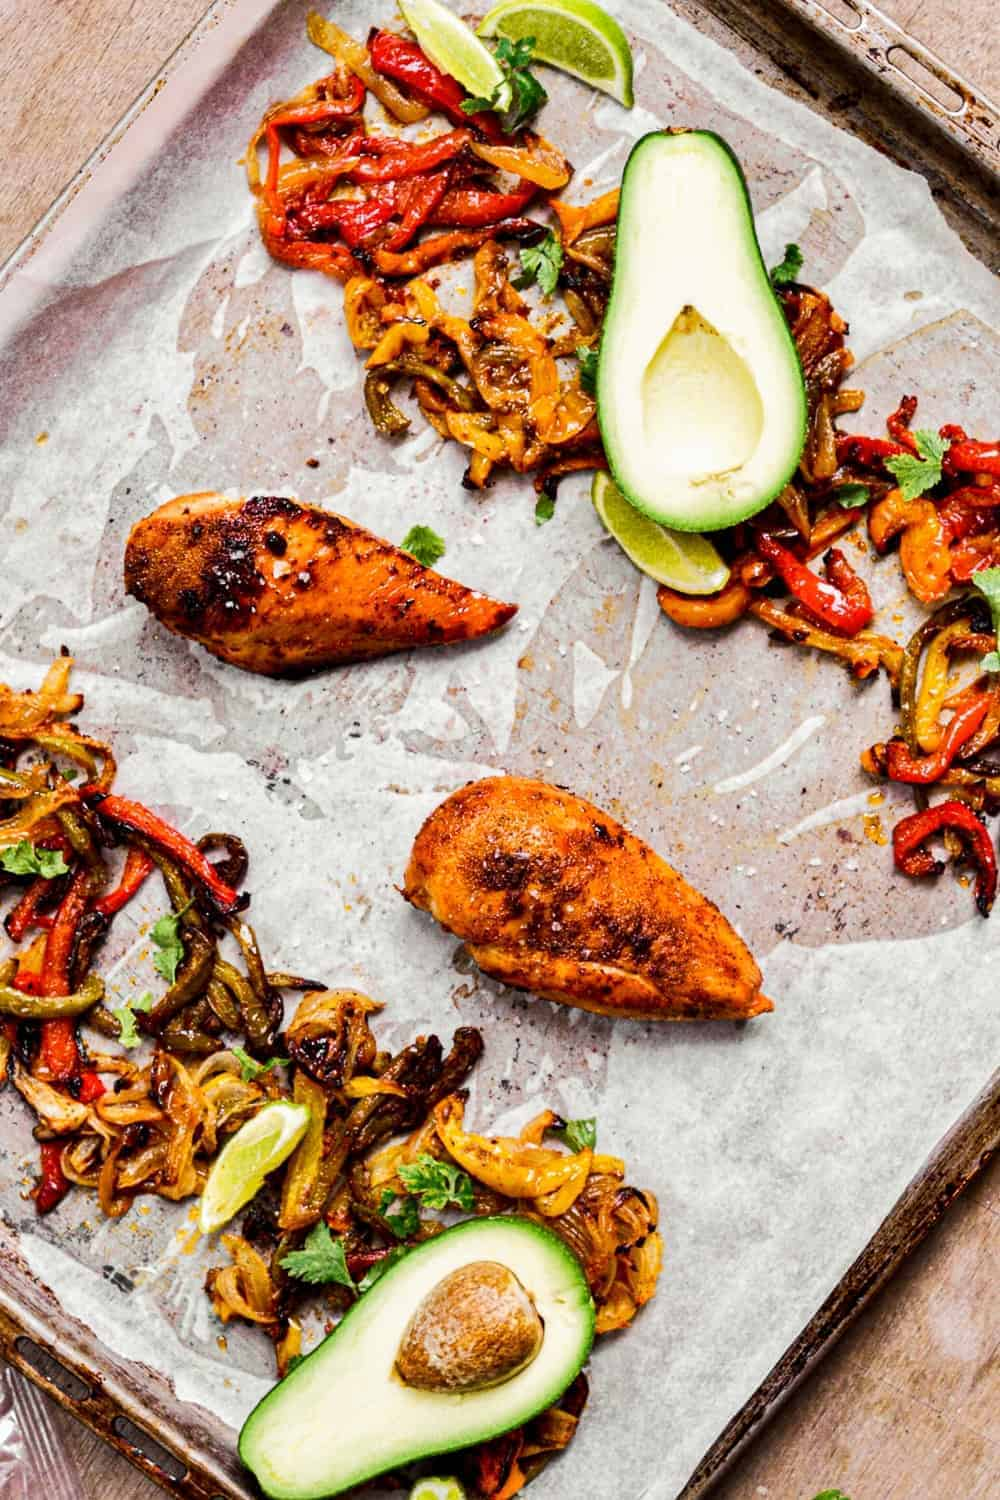 chicken and bell peppers on parchment paper